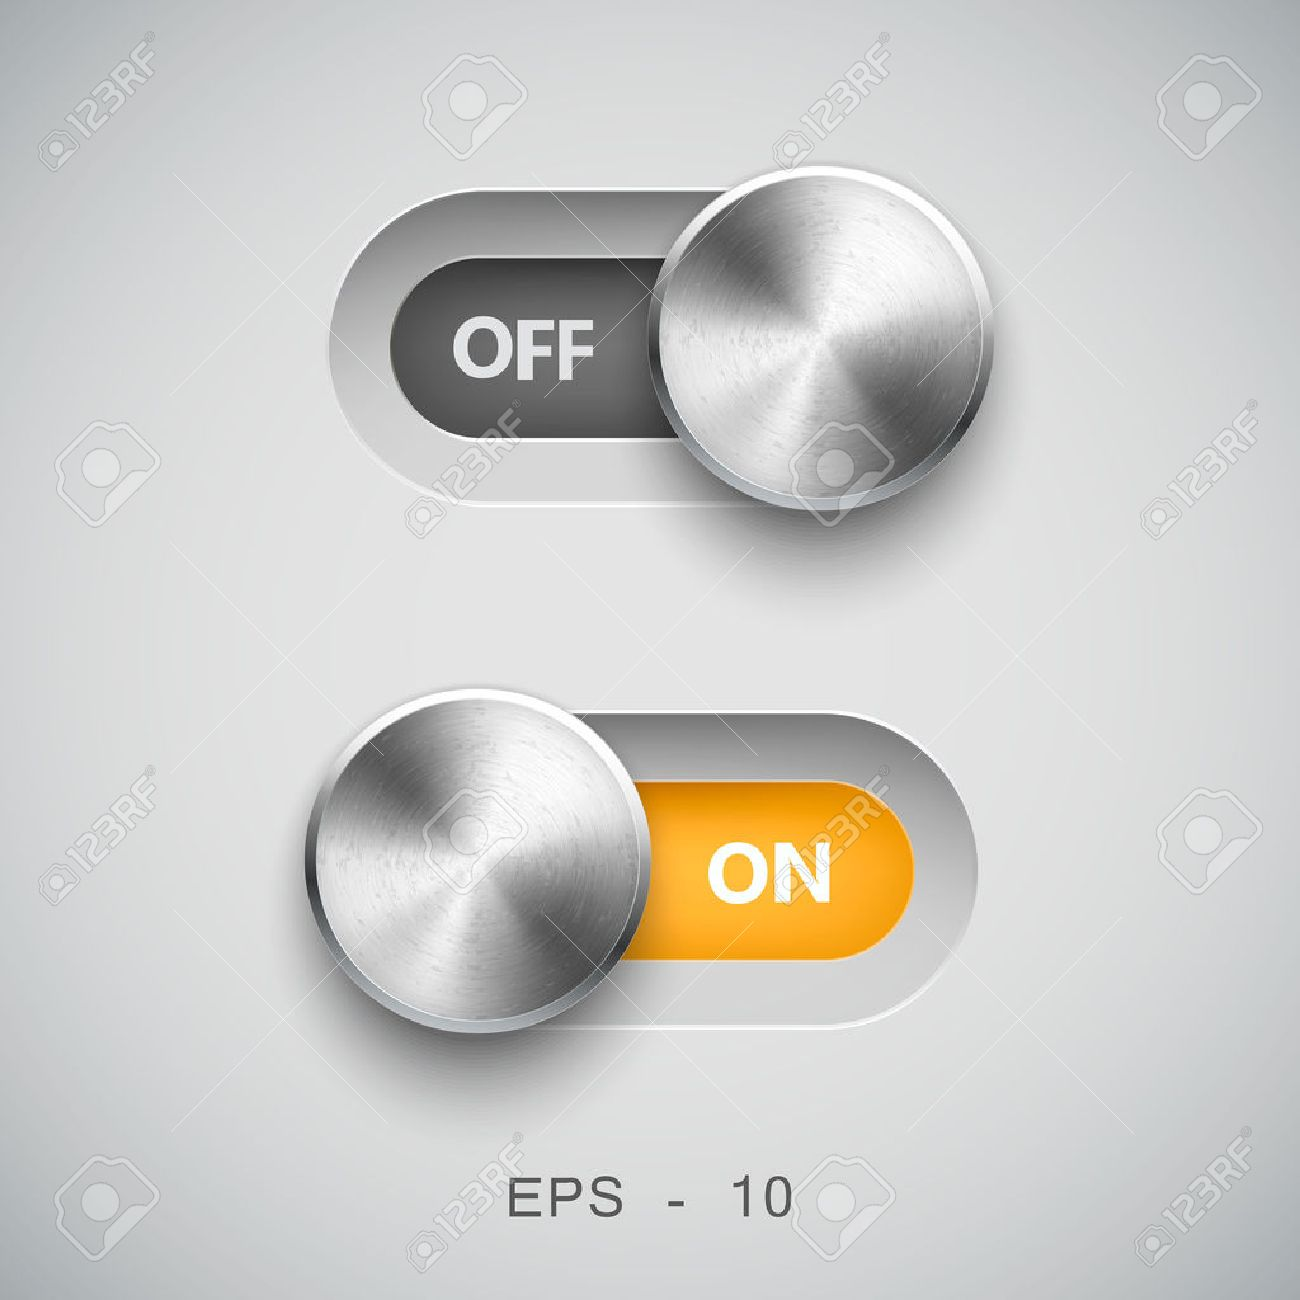 Cool on off switch symbols photos everything you need to know excellent switch symbols pictures inspiration everything you biocorpaavc Images